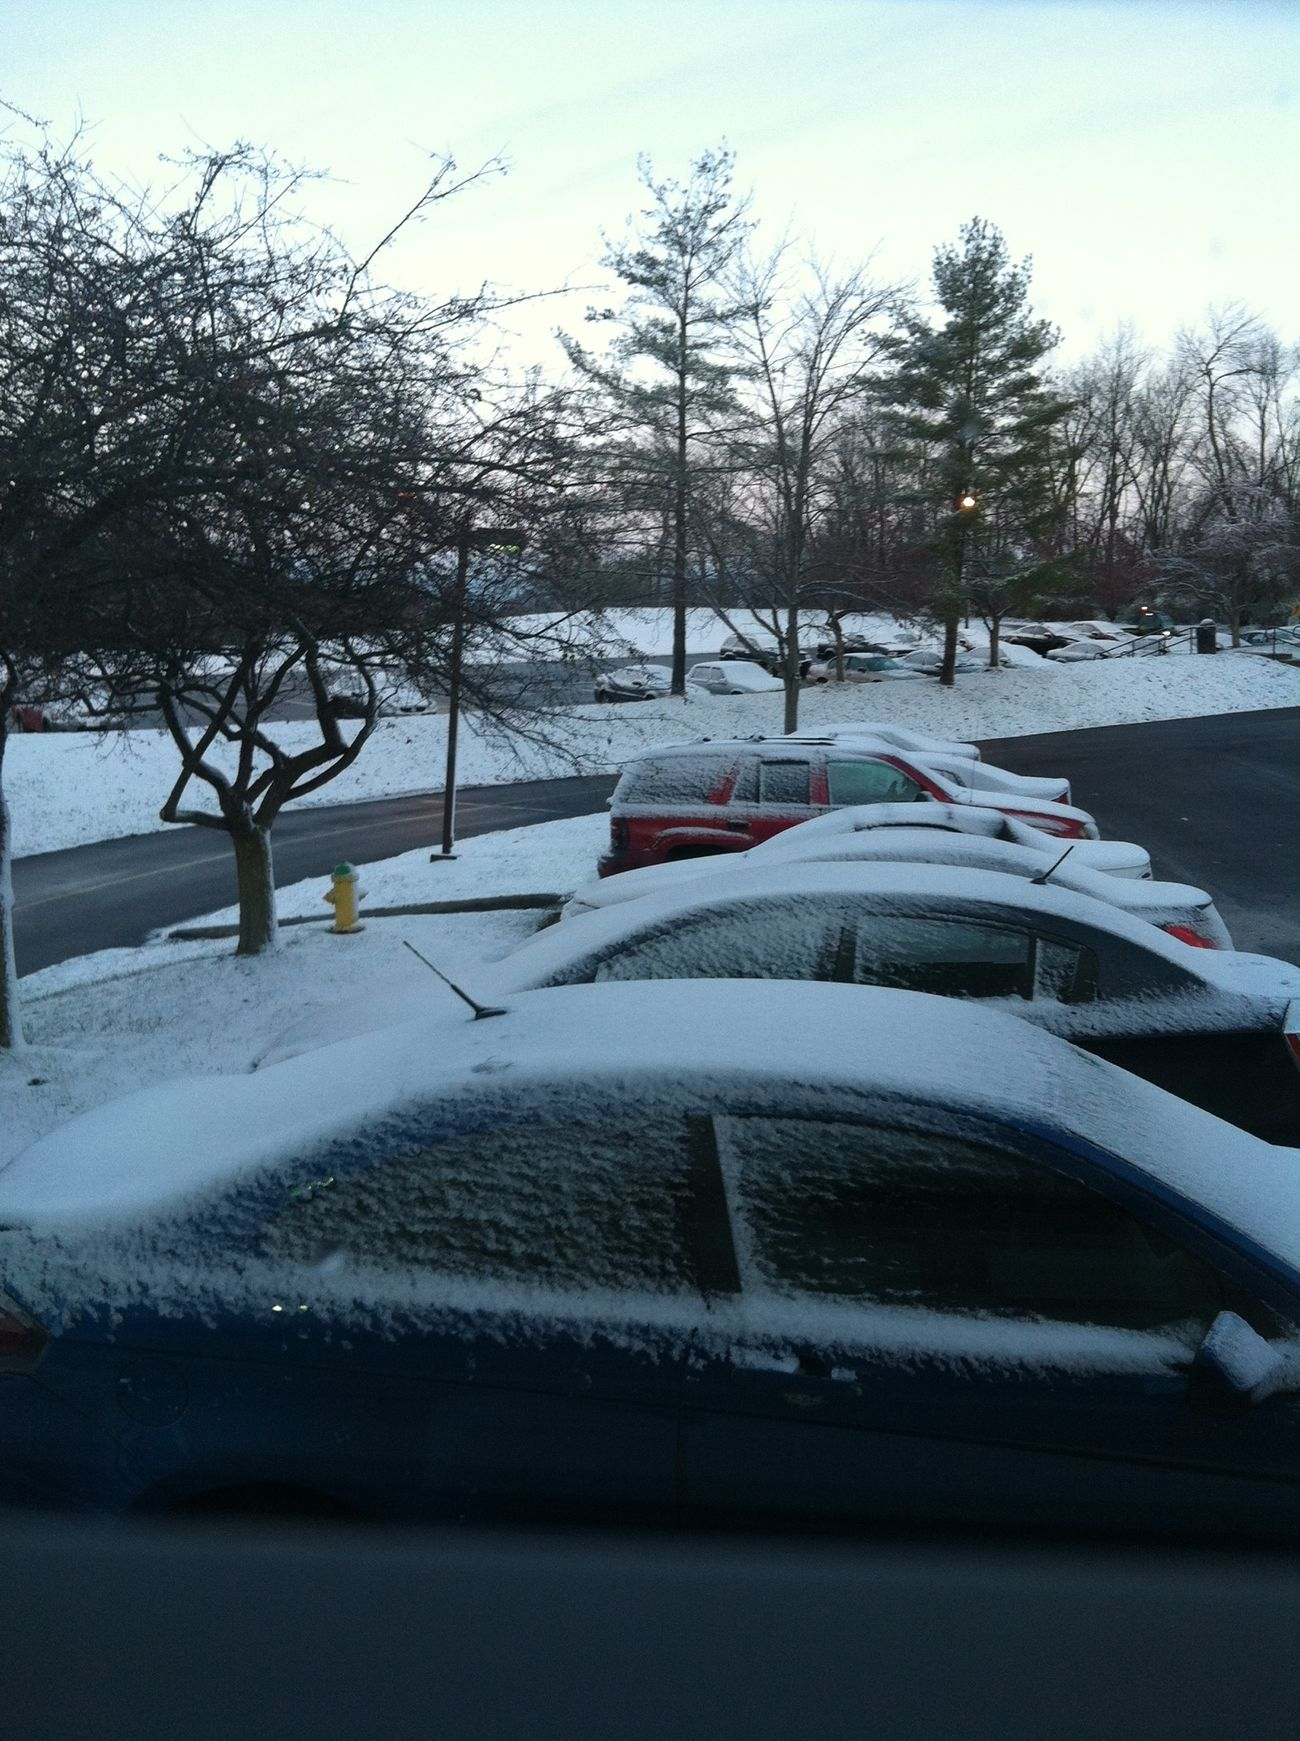 Nooooo it snowed I wasn't ready!!!!!!!! Hatesnow